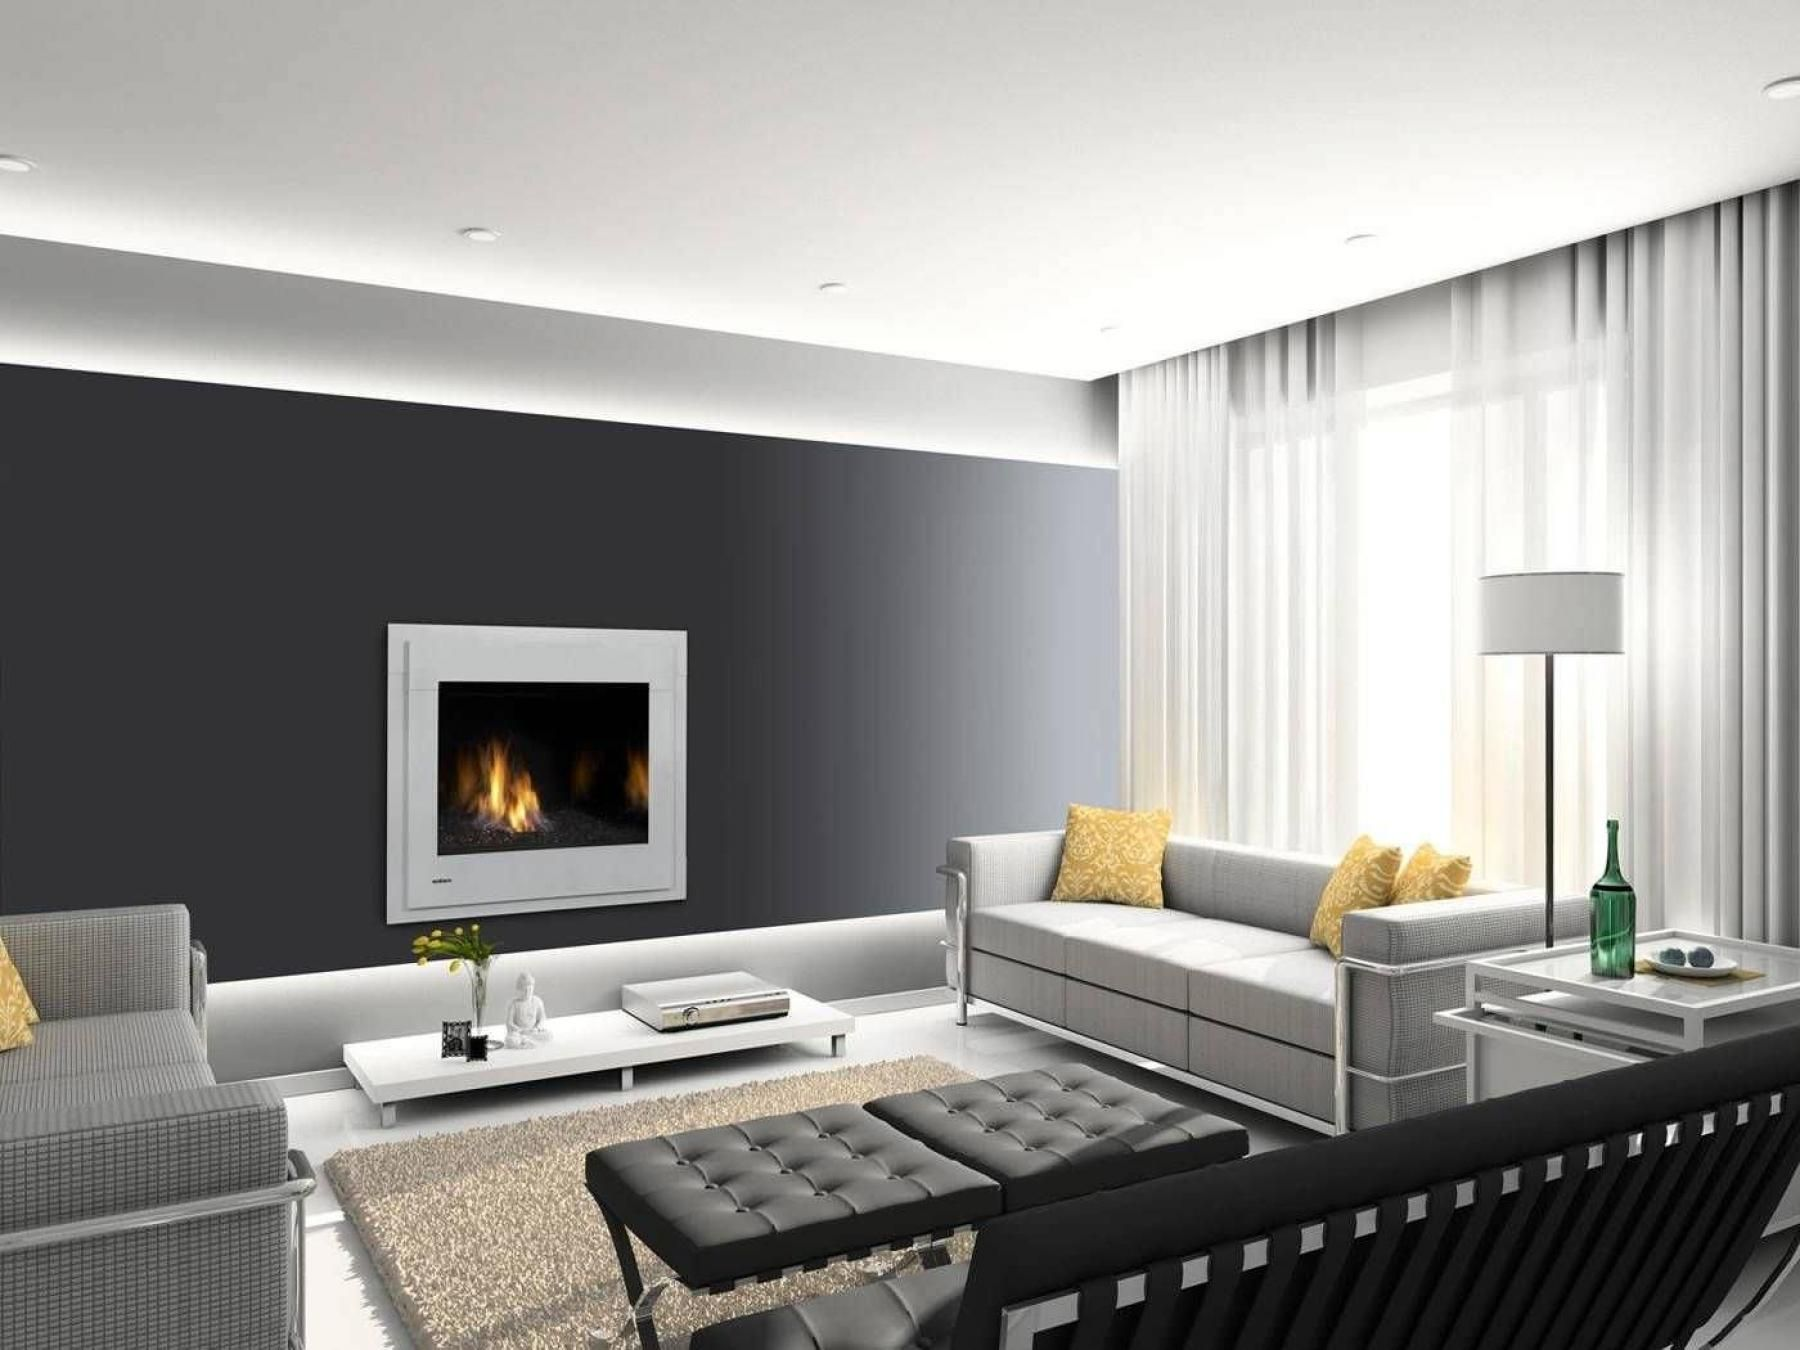 Fashionable Modern Decorative Fireplace Screen Insert On Dark Gray Wall In Living  Room Including Brown Rug Part 15